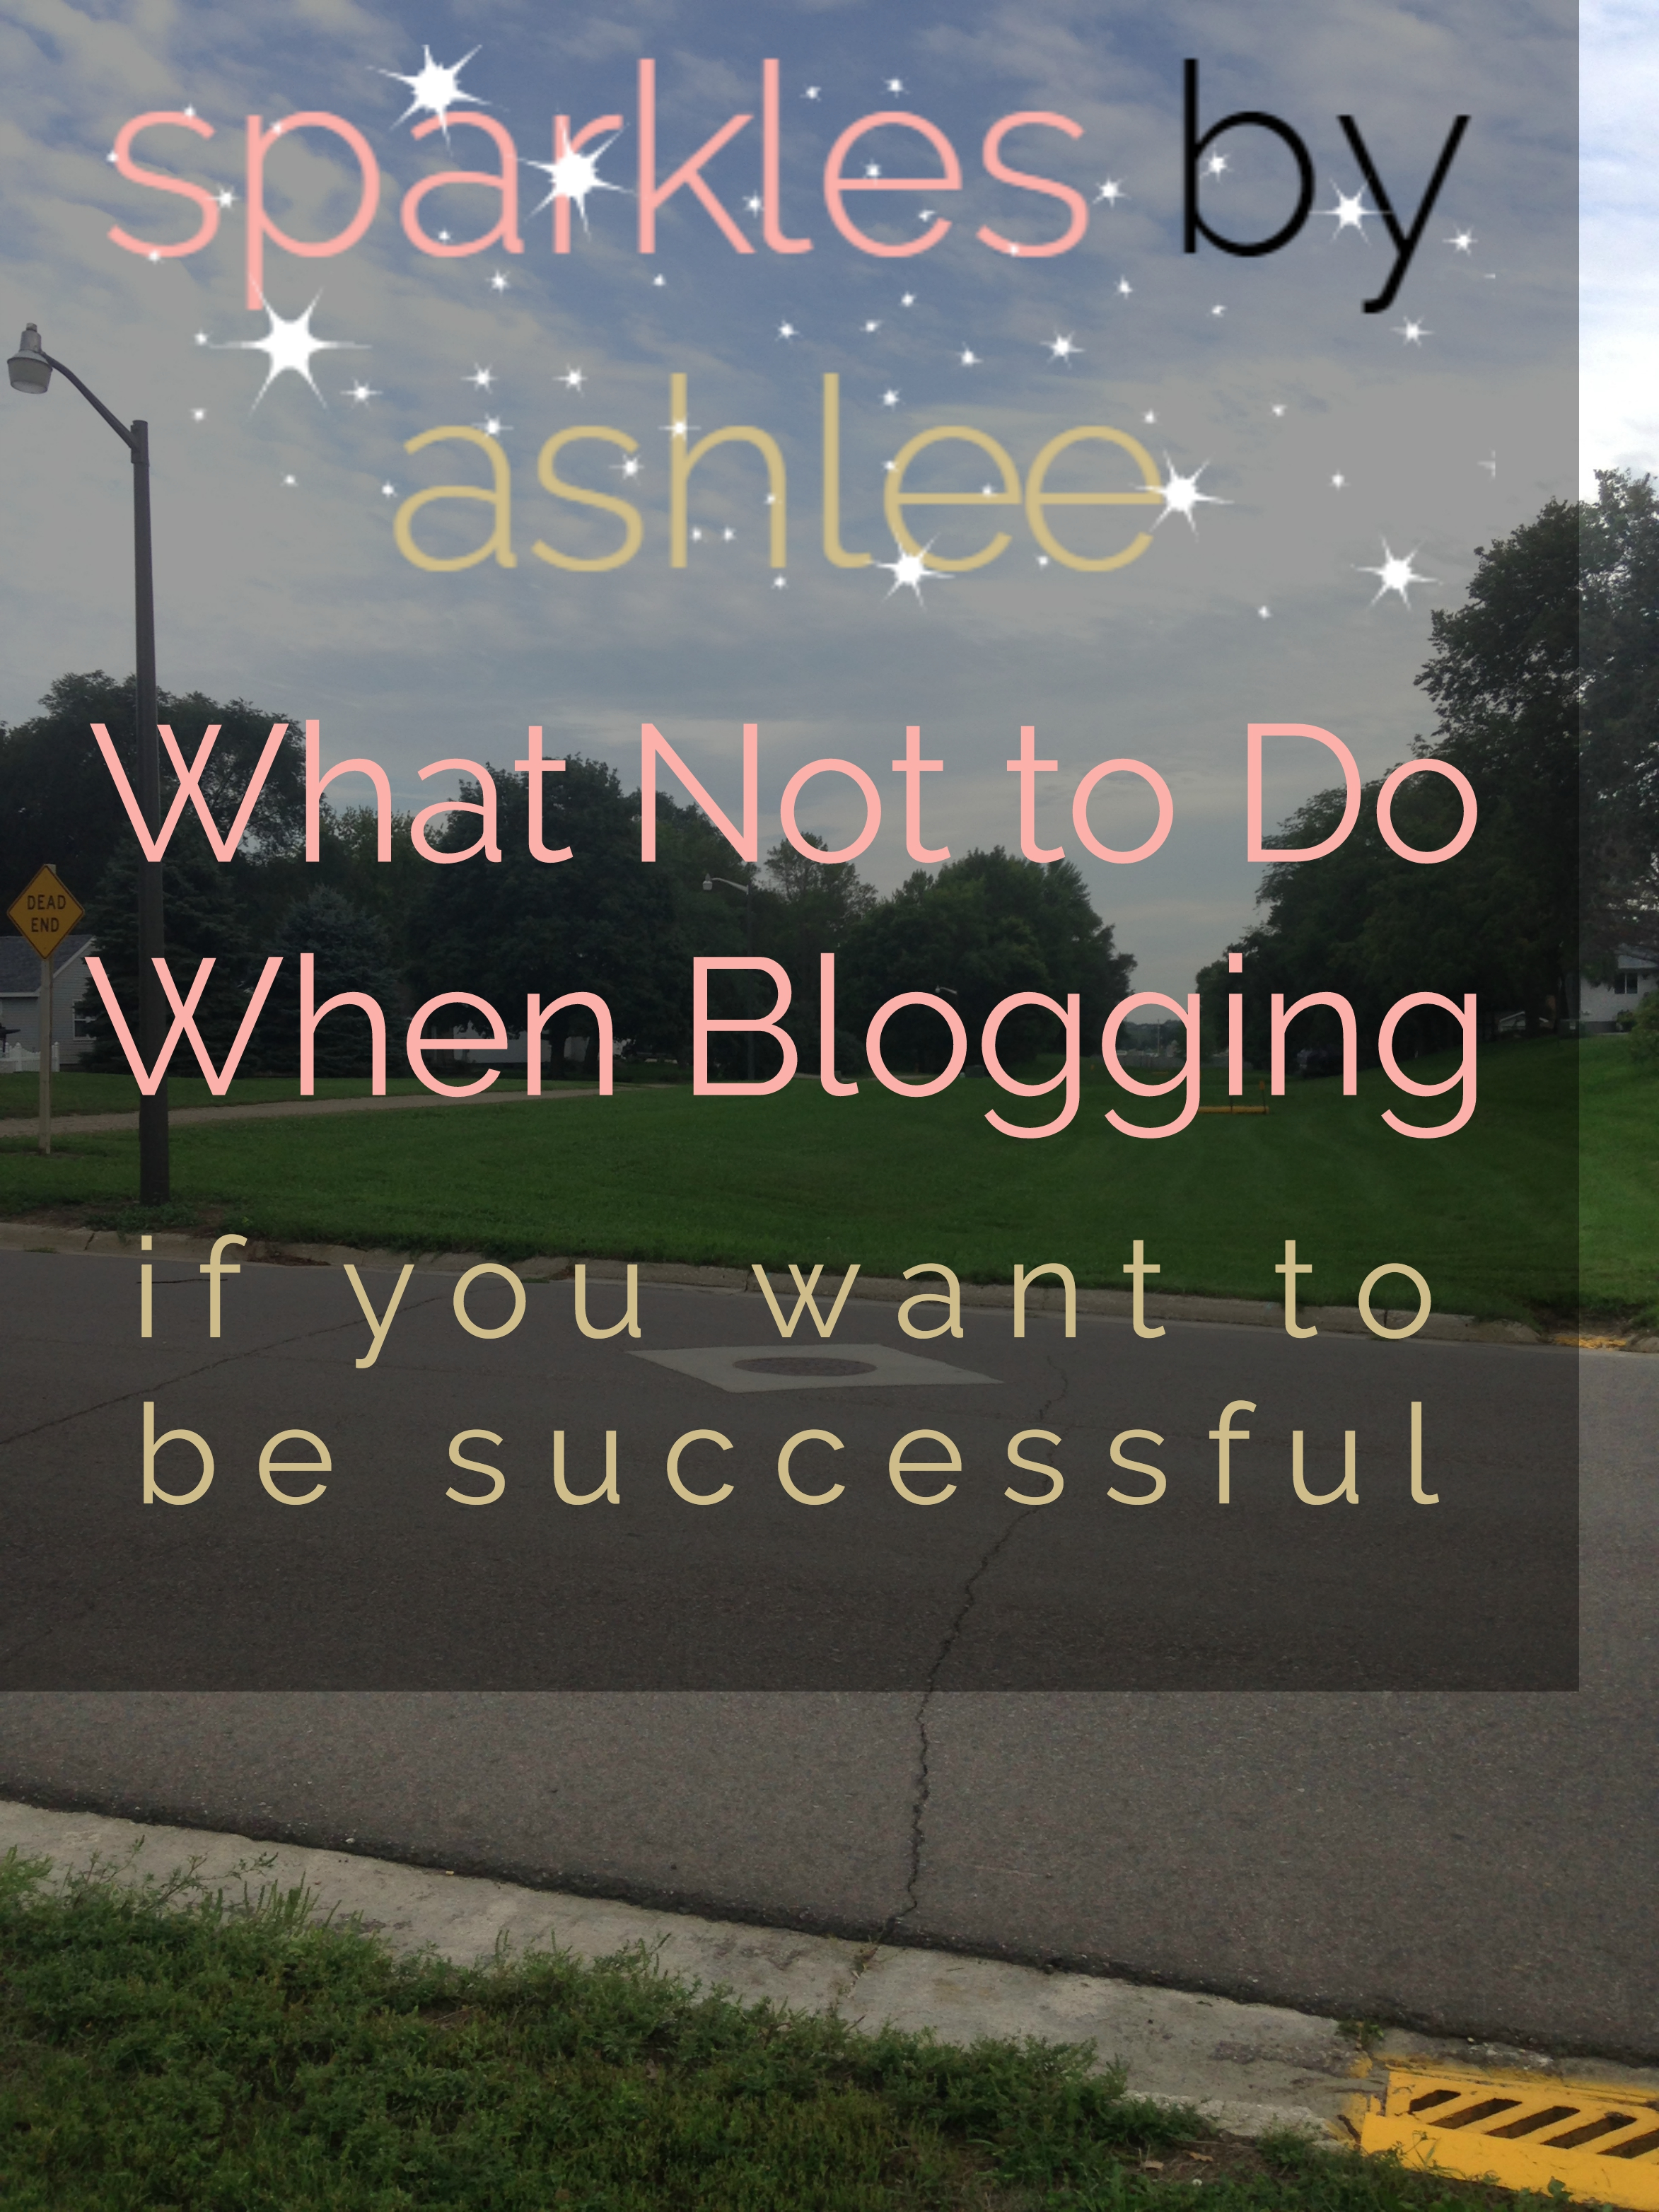 What-Not-to-Do-When-Blogging-Sparkles-by-Ashlee.jpg